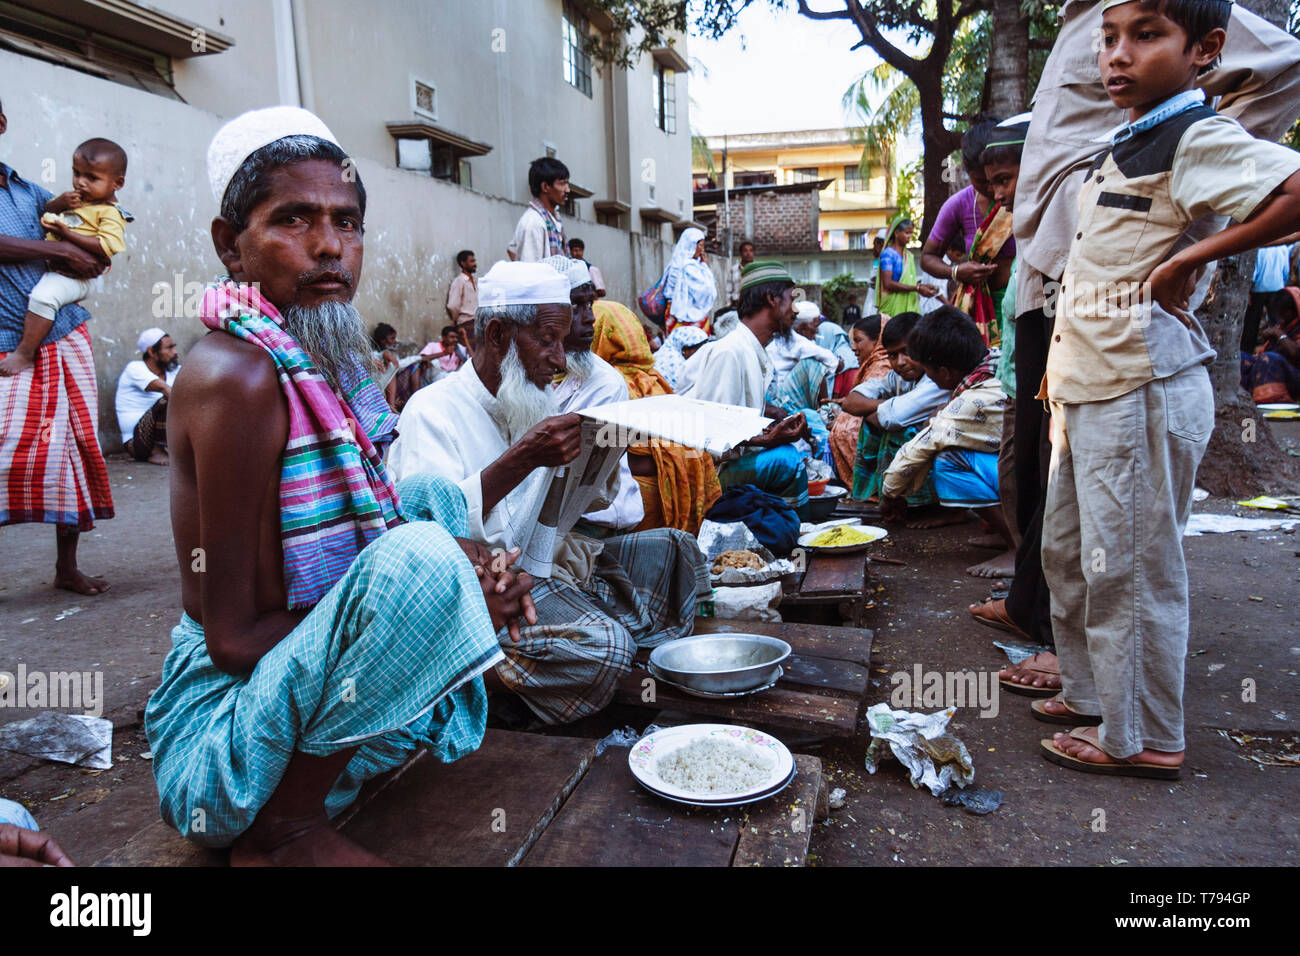 Sylhet, Bangladesh : Needy people is provided with free food according with the sufi langar principle at the shrine of Hazrat Shah Jalal (a revered 14 - Stock Image